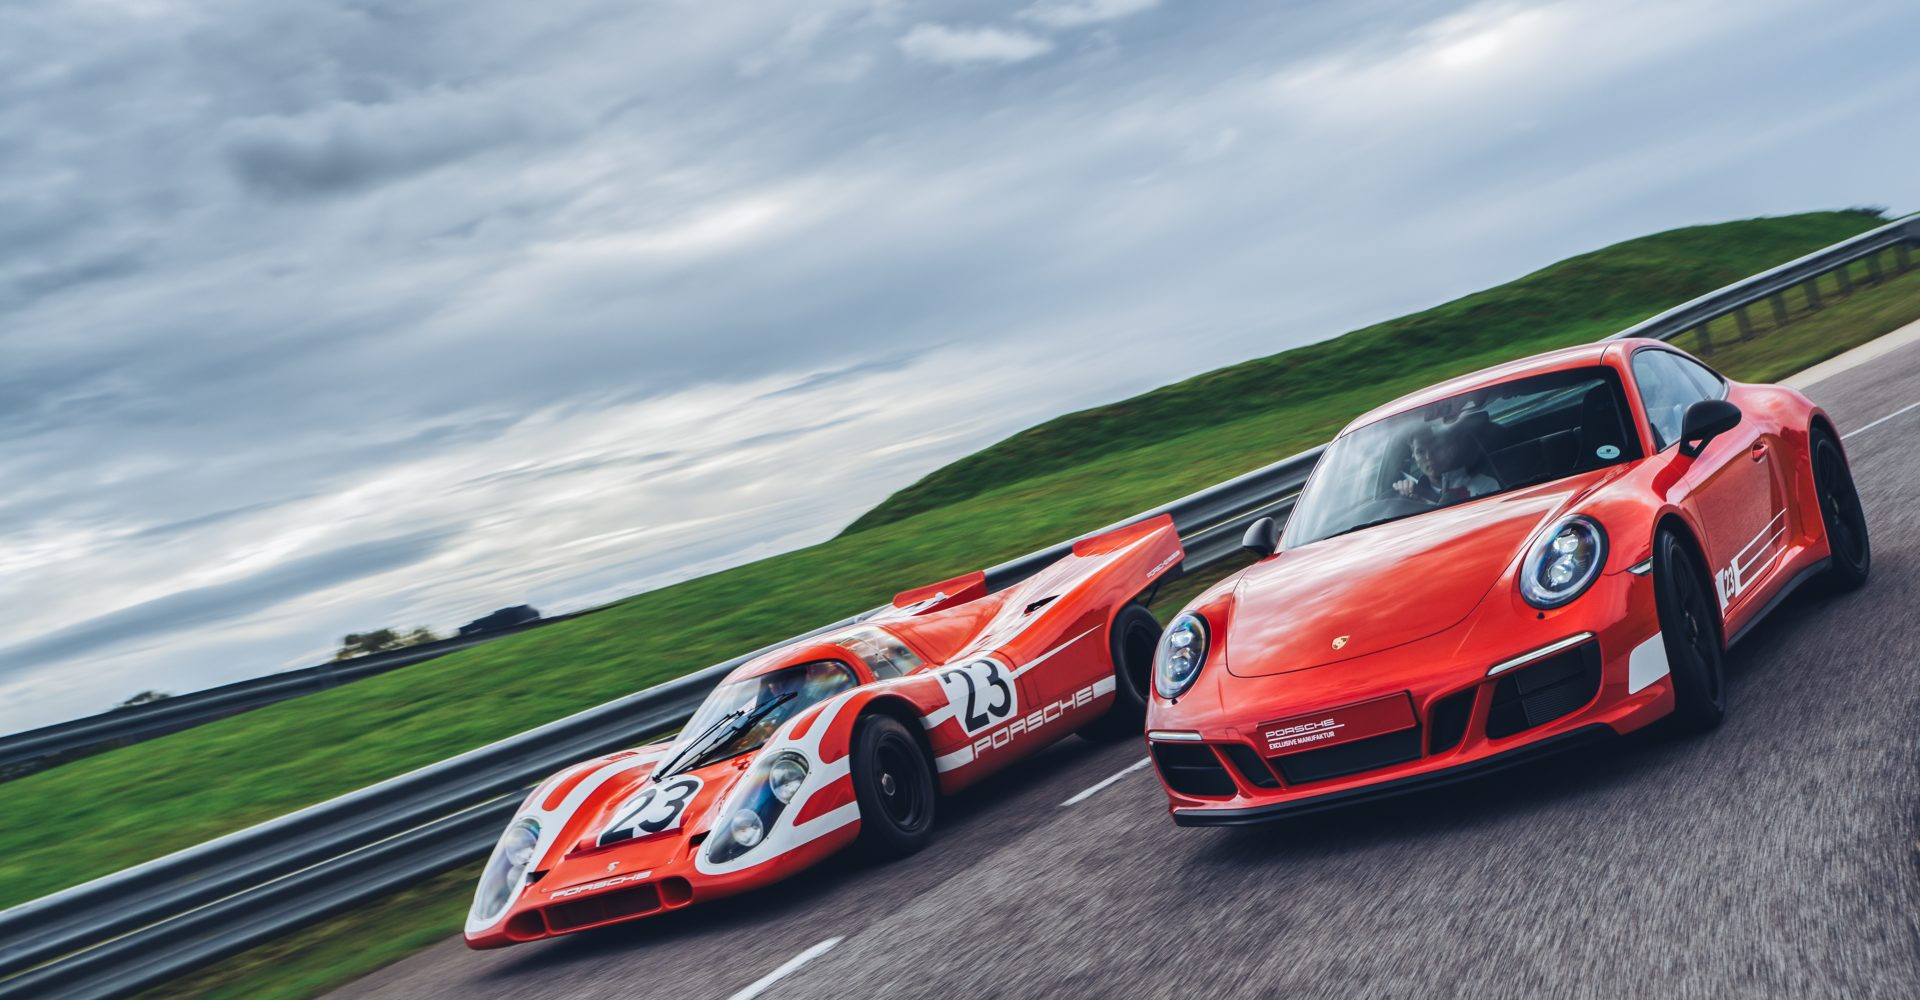 Porsche reveals Le Mans-inspired 'British Legends Edition' 911s